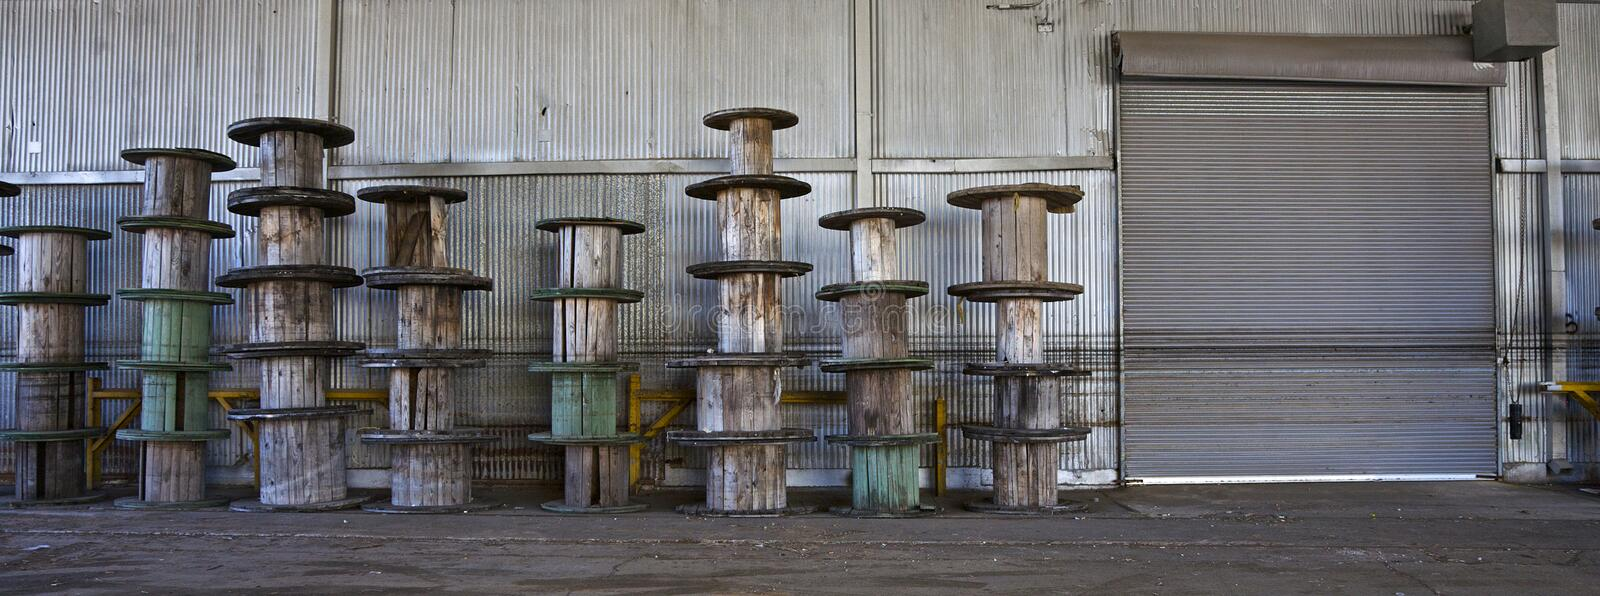 Abandoned Metal Factory Royalty Free Stock Photography